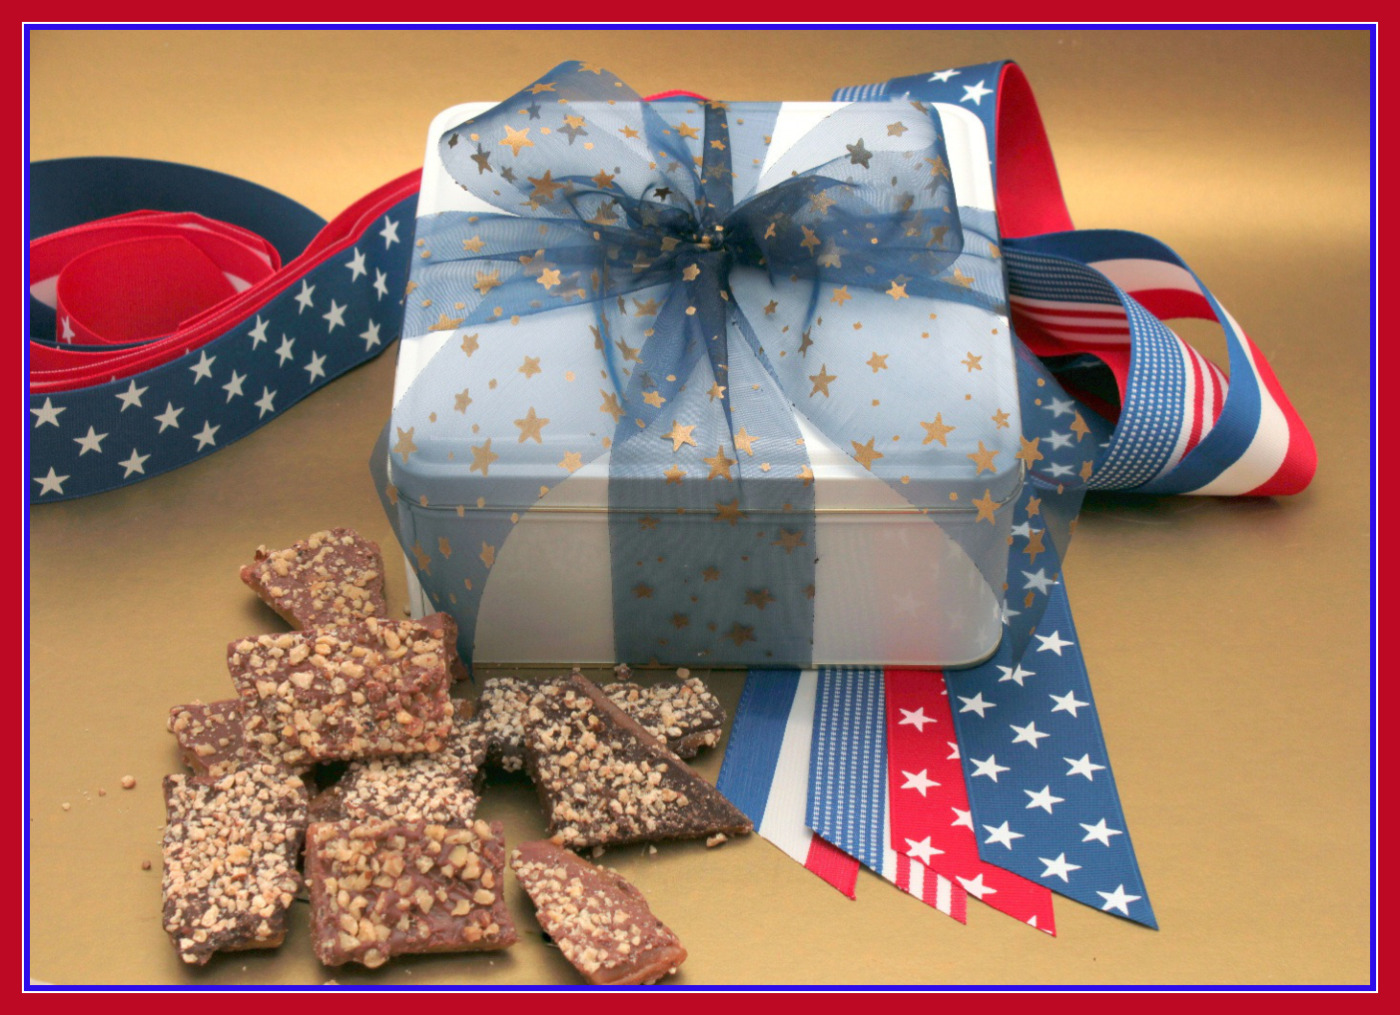 4th of July 1 ¼ pounds Toffee